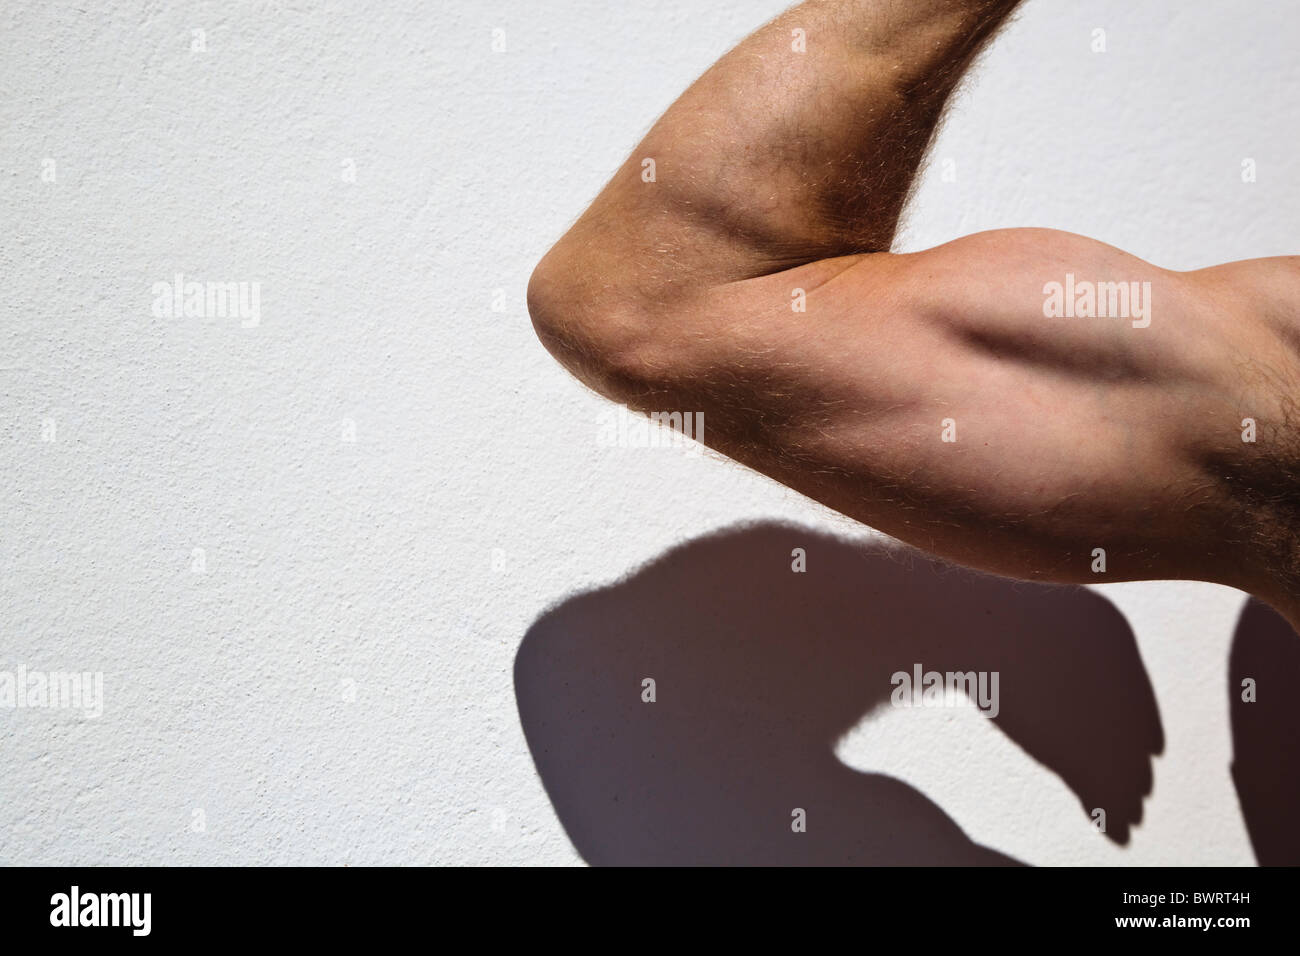 Man bending arm to show well developed biceps and triceps. - Stock Image